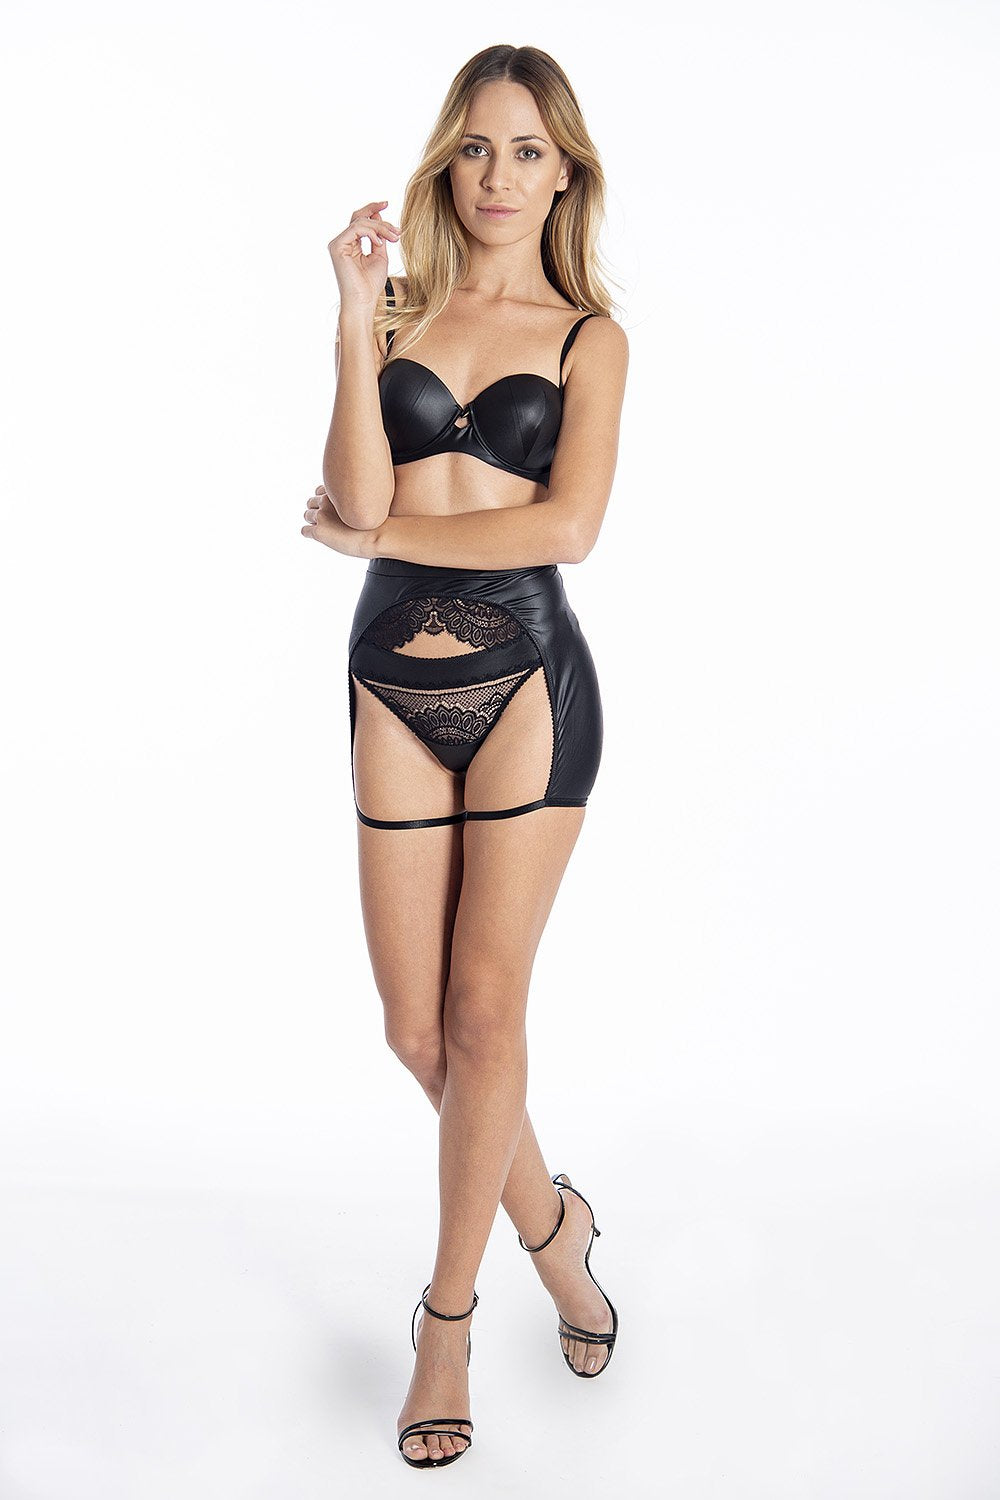 Jolidon soft thigh harness in black